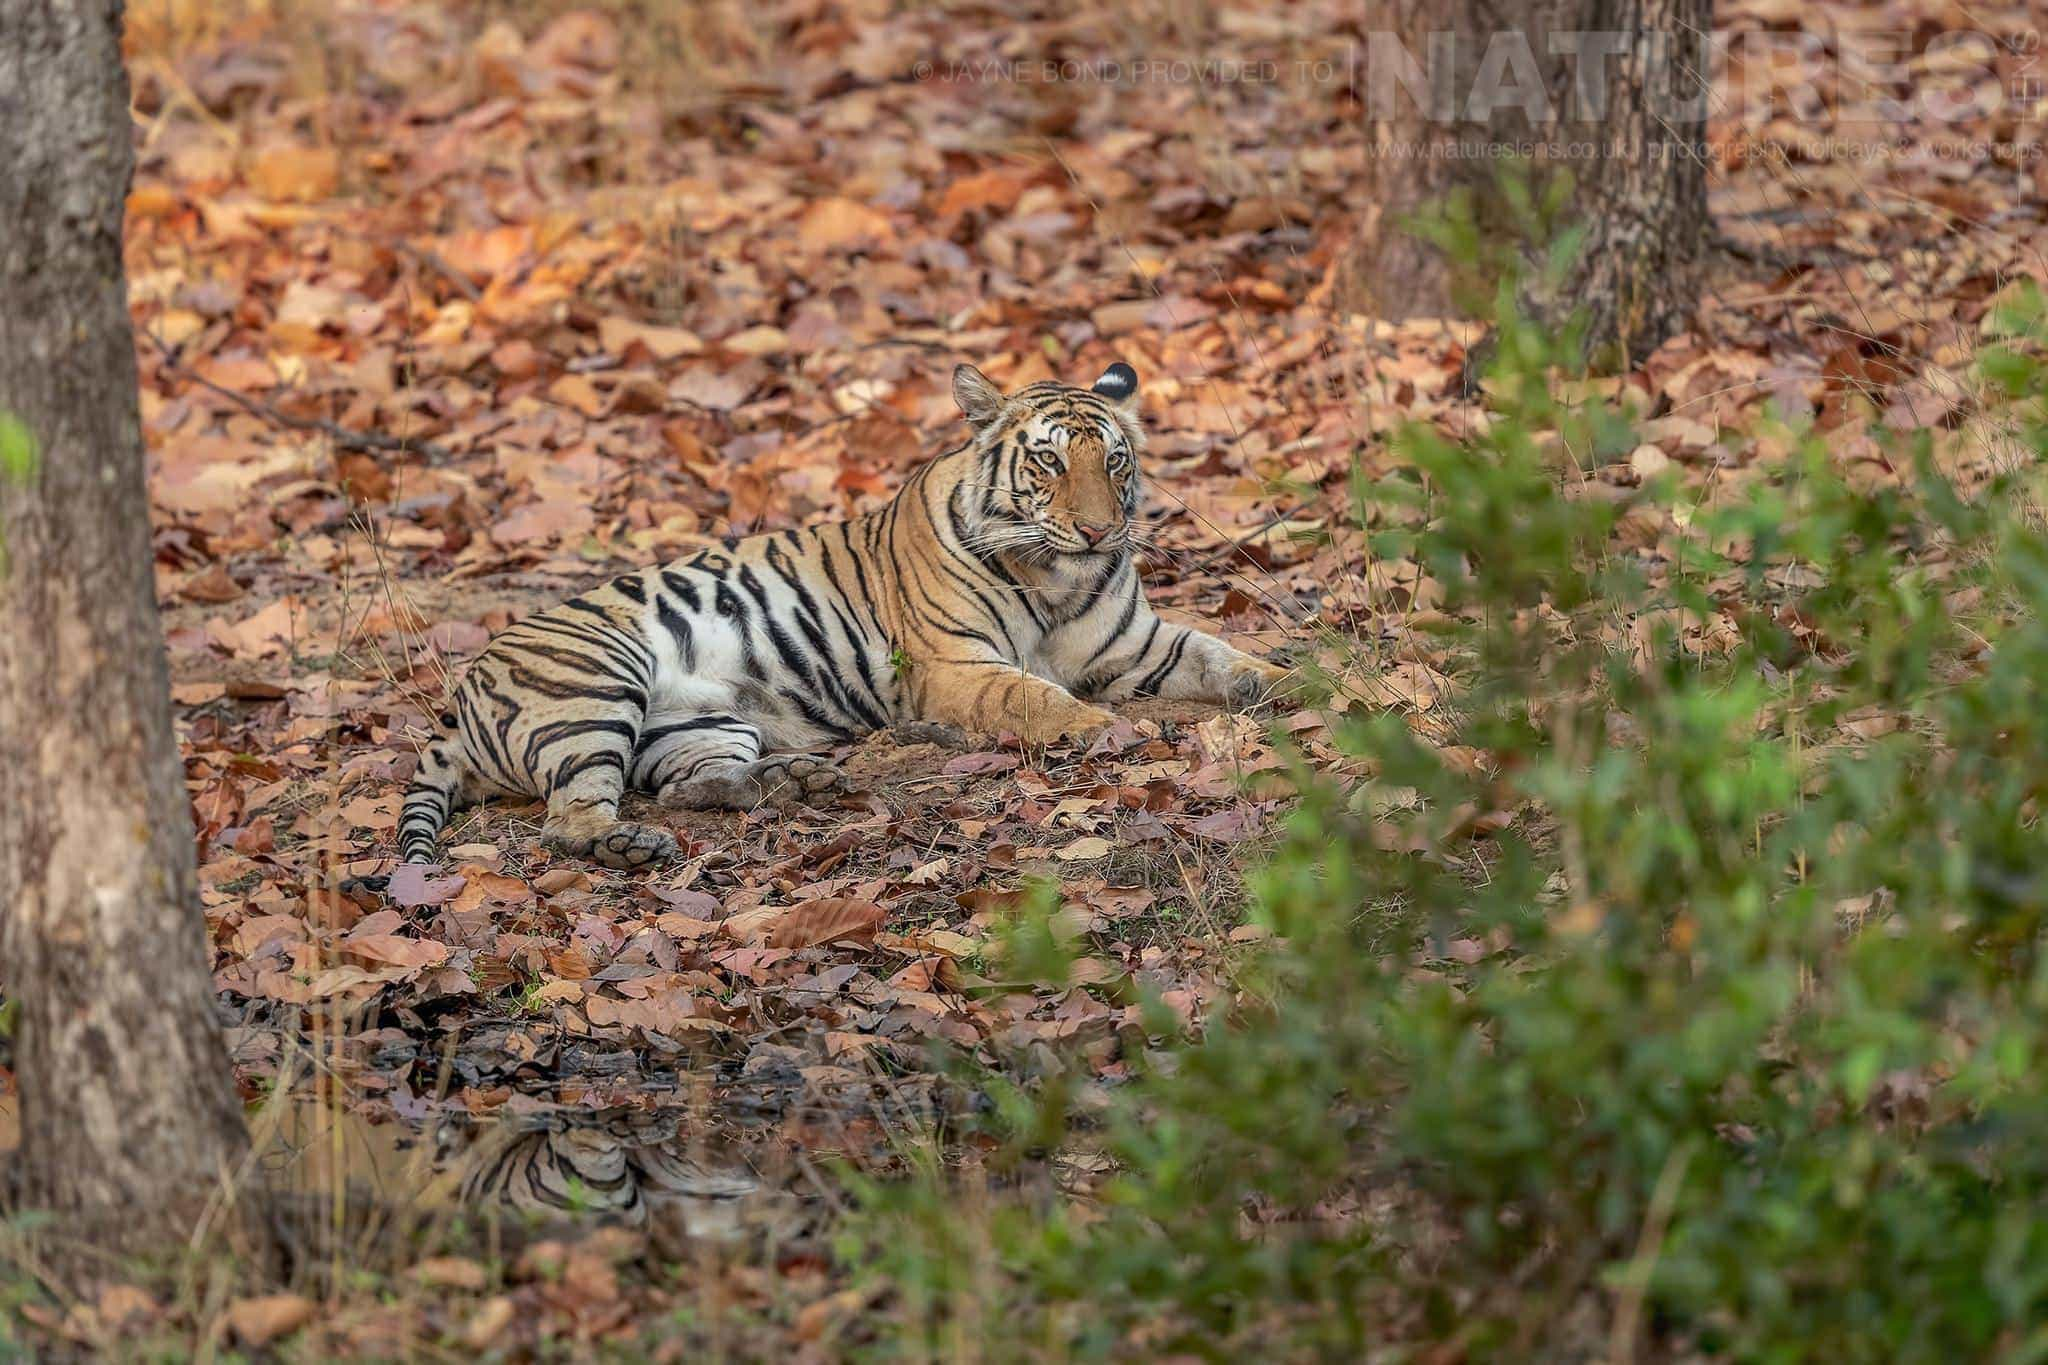 A Tiger Rests Amongst The Fallen Leaves   Photographed During The NaturesLens Tigers Of Bandhavgarh Photography Holiday